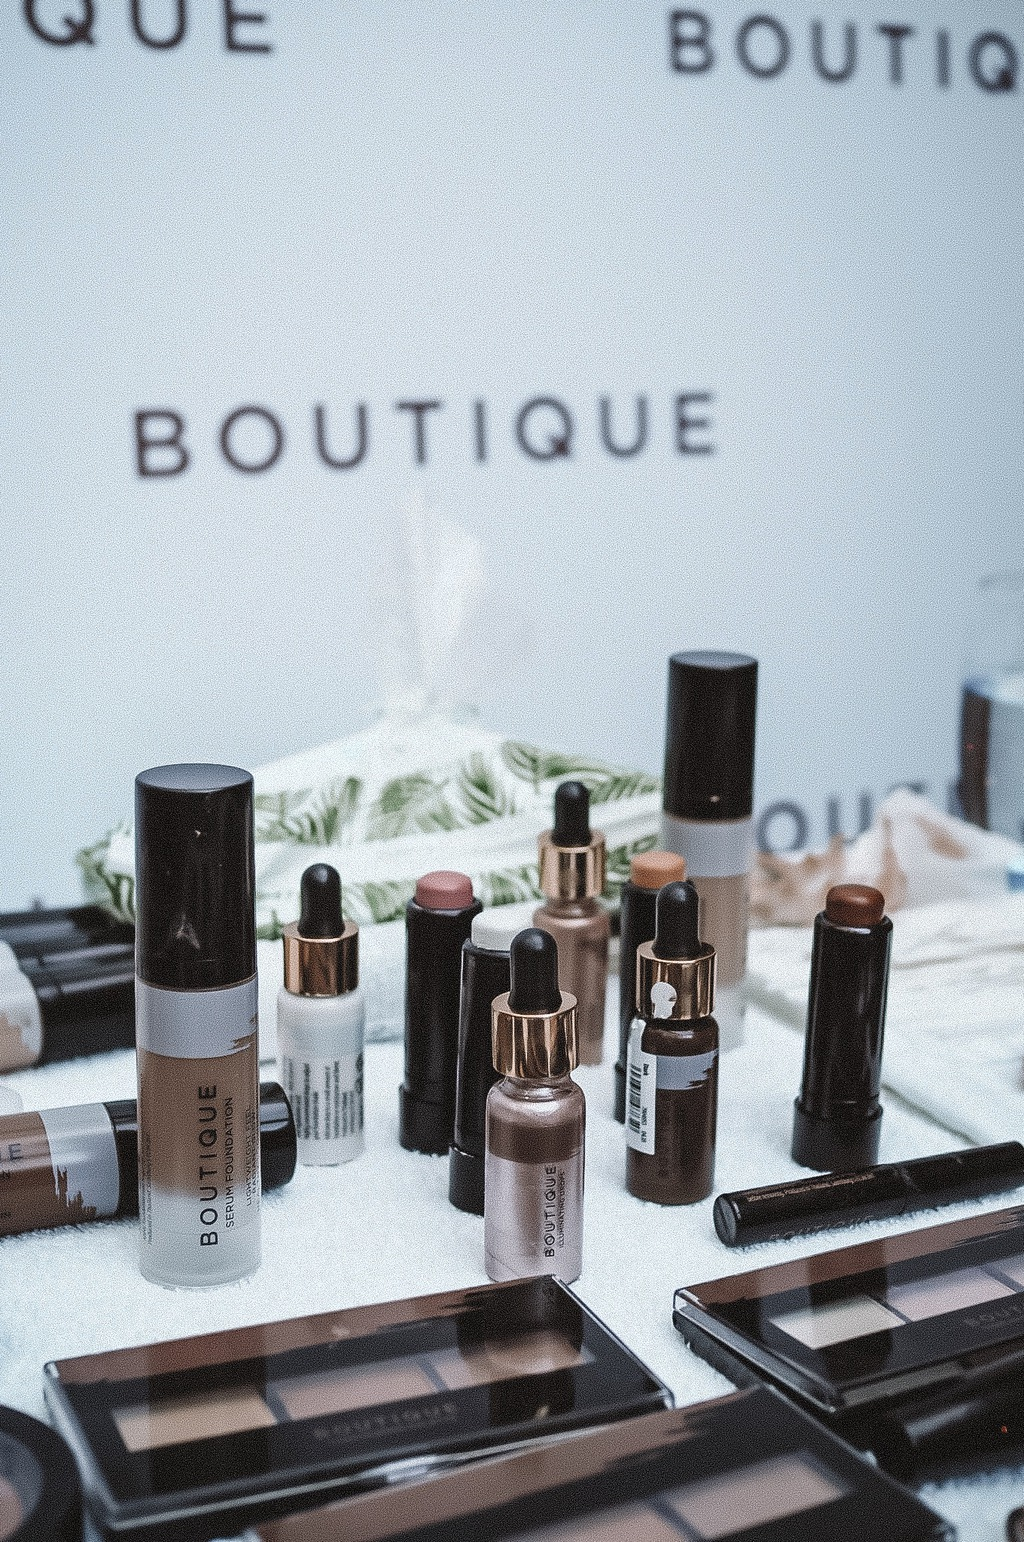 Cruelty-free, affordable beauty products for under a tenner?!